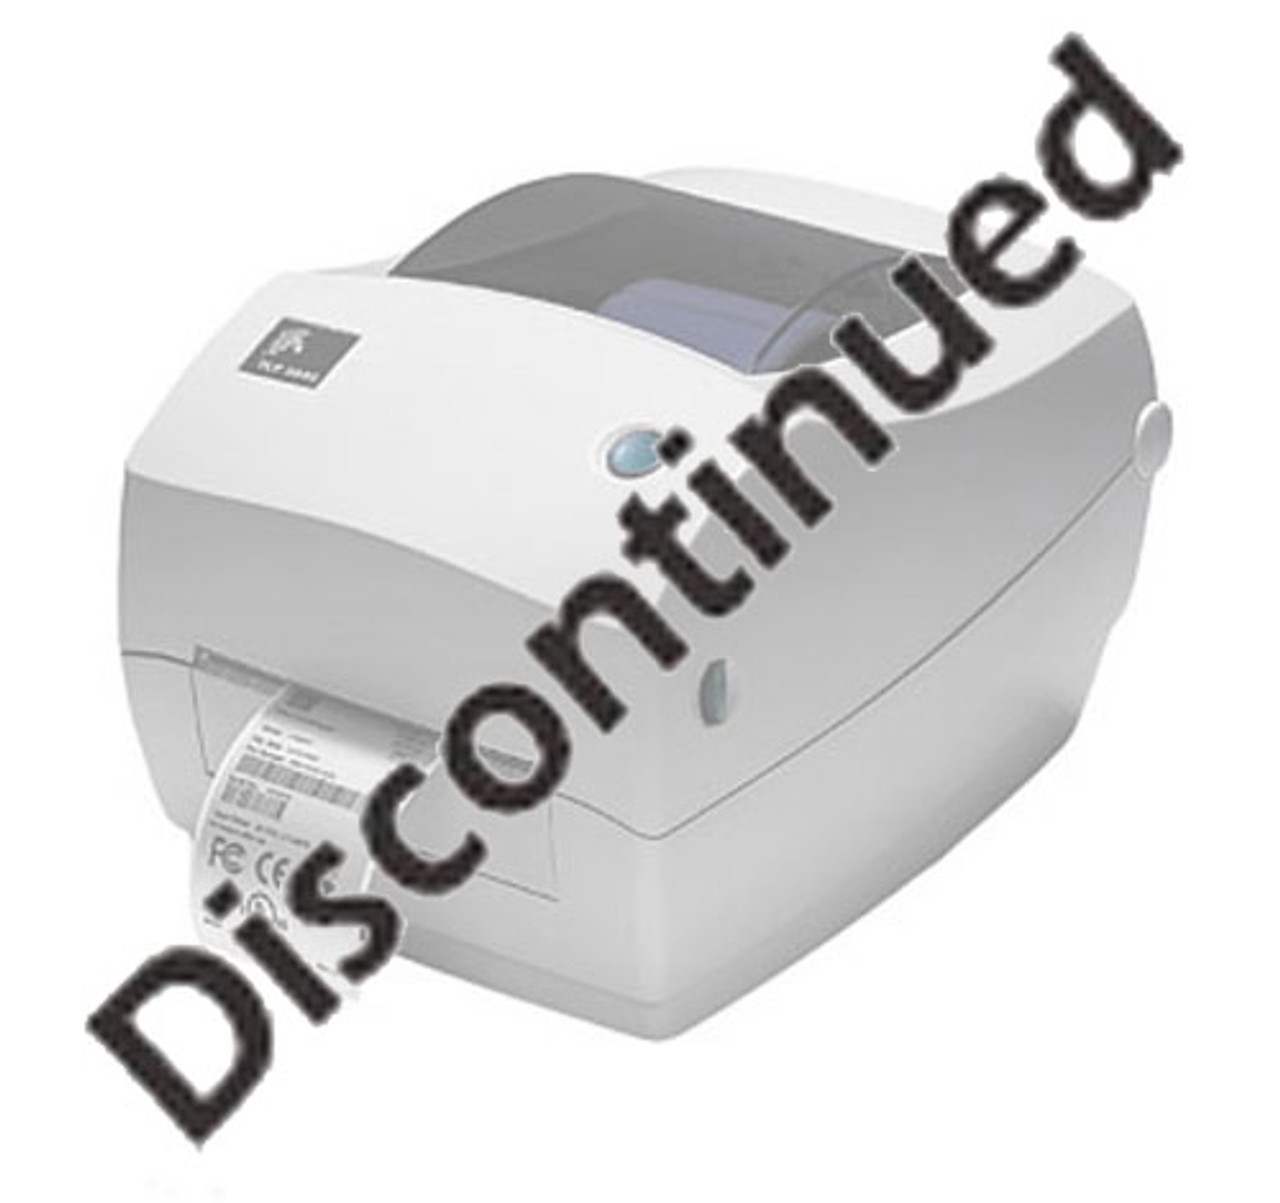 Discontinued Printer Parts